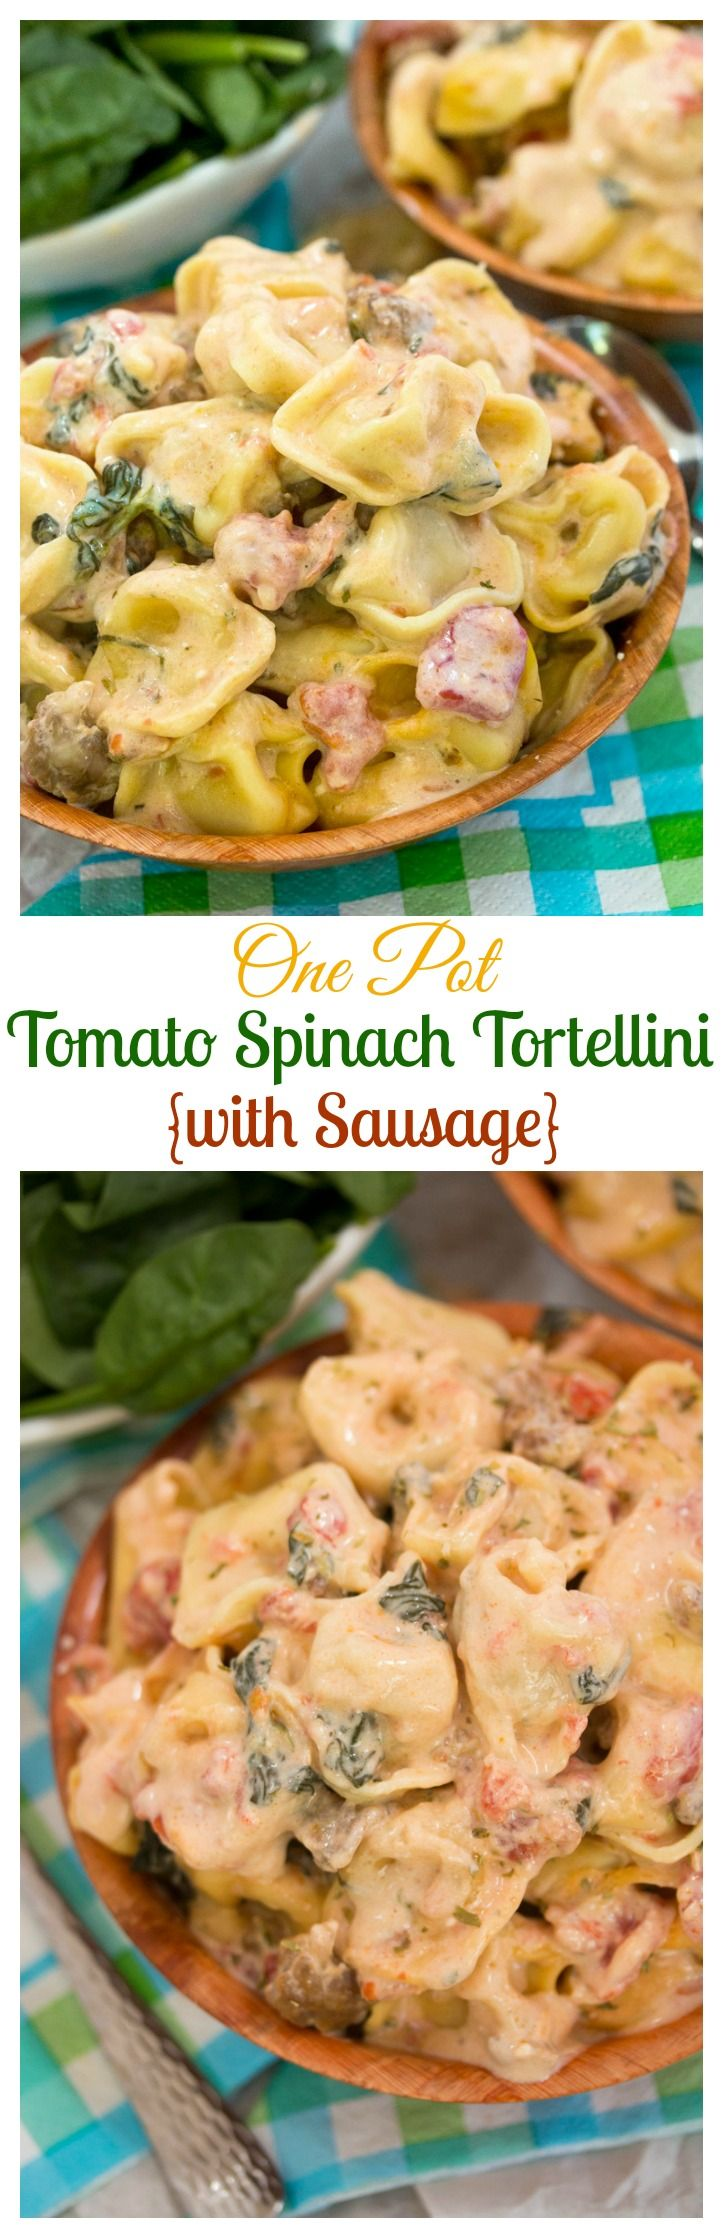 One Pot Tomato Spinach Tortellini {with Sausage}: Cheese-filled tortellini in a creamy sauce with tomatoes, spinach, and sausage, easily prepared in one pot or in the crock pot.